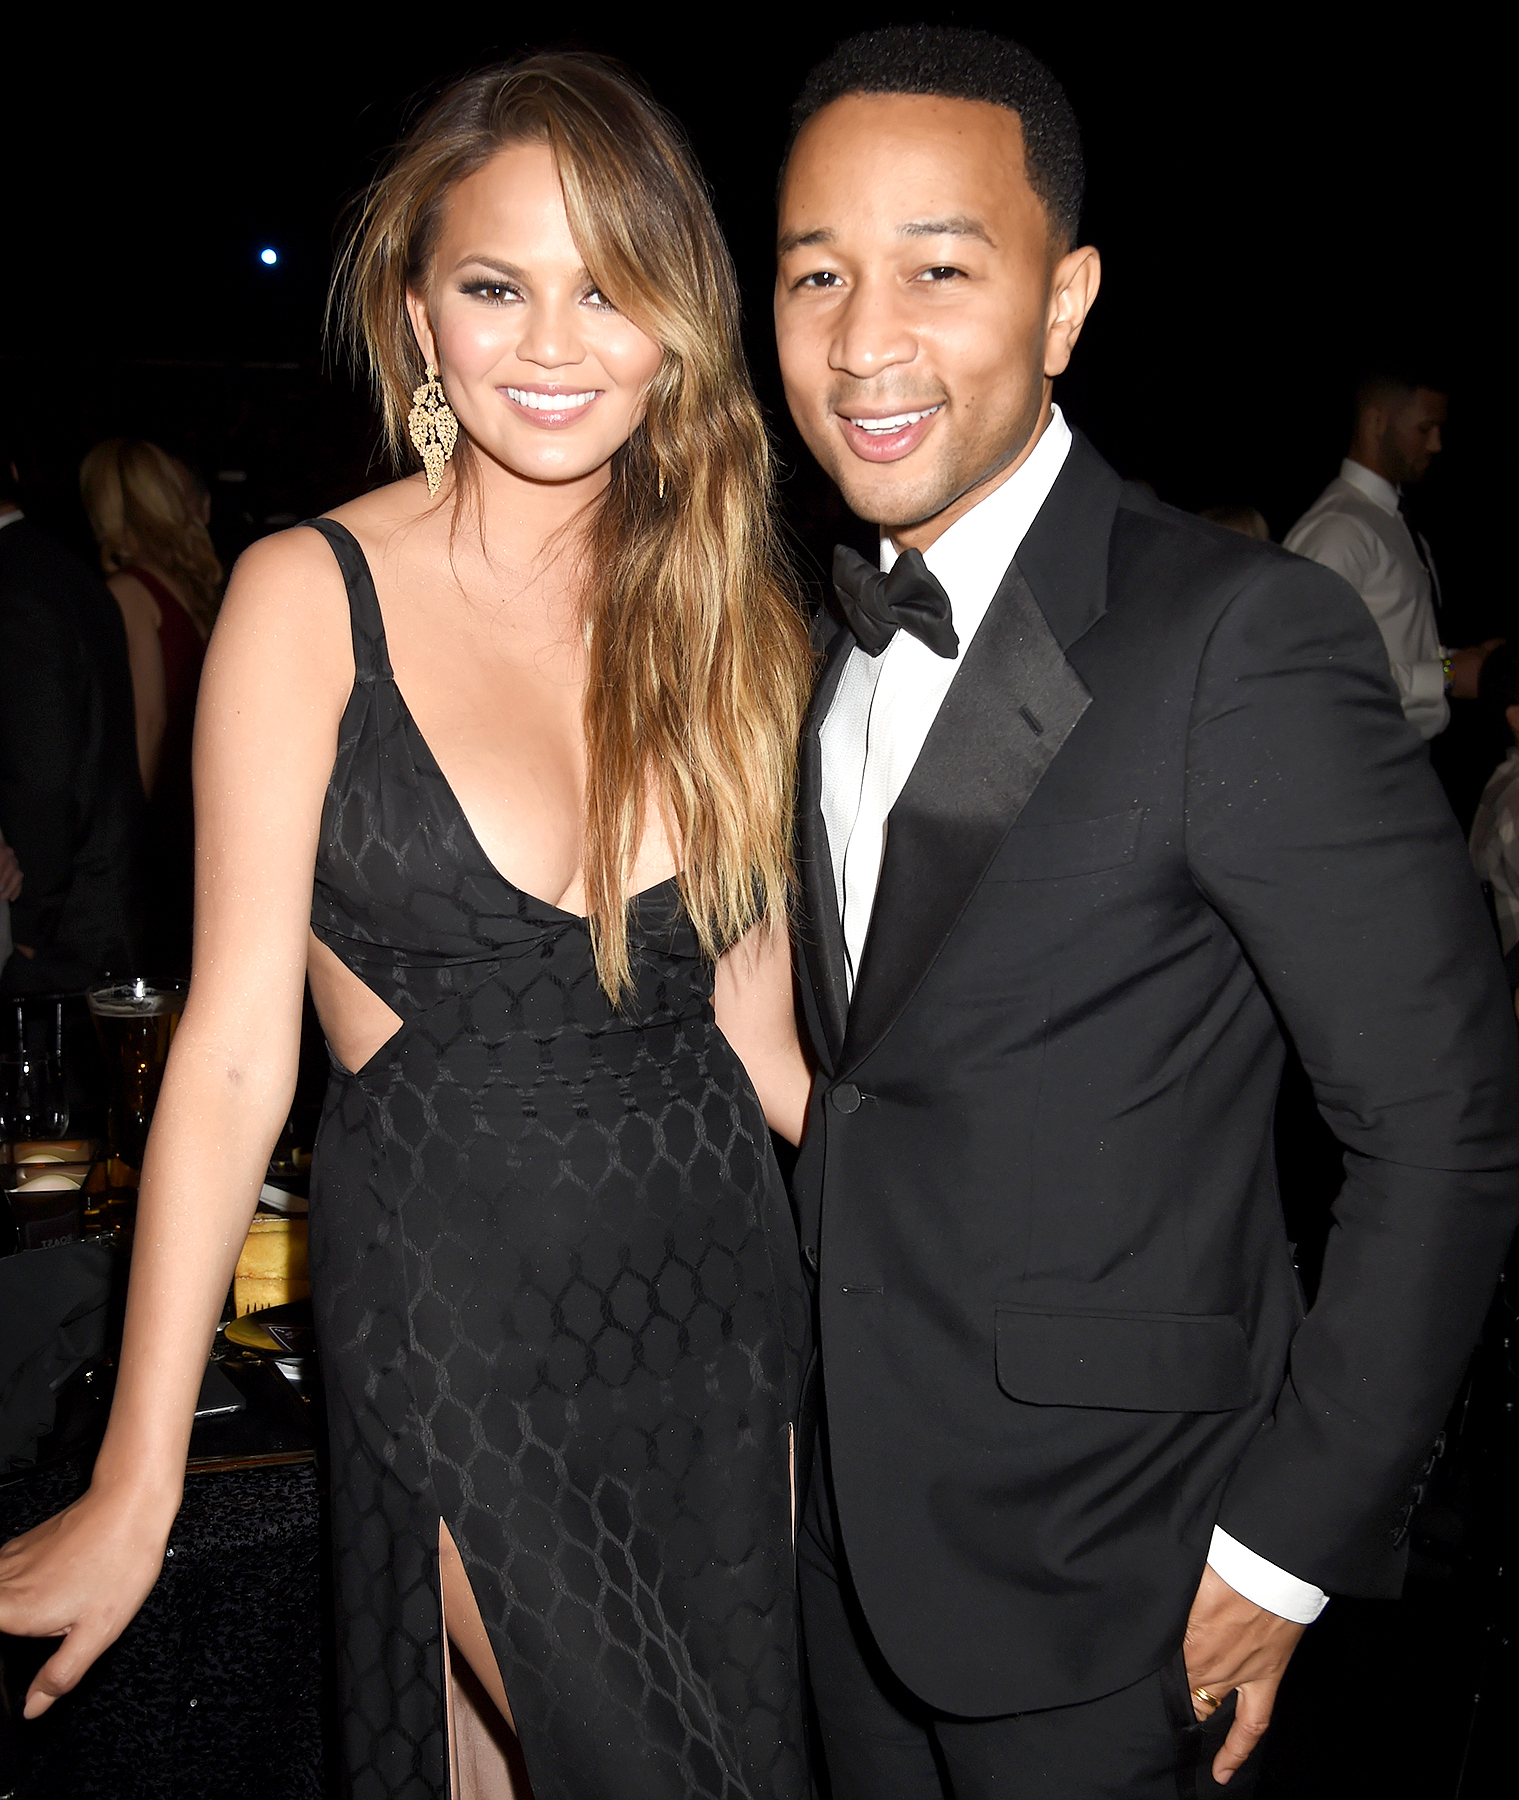 Chrissy Teigen (L) and recording artist John Legend attend The Comedy Central Roast of Justin Bieber at Sony Pictures Studios on March 14, 2015 in Los Angeles, California.